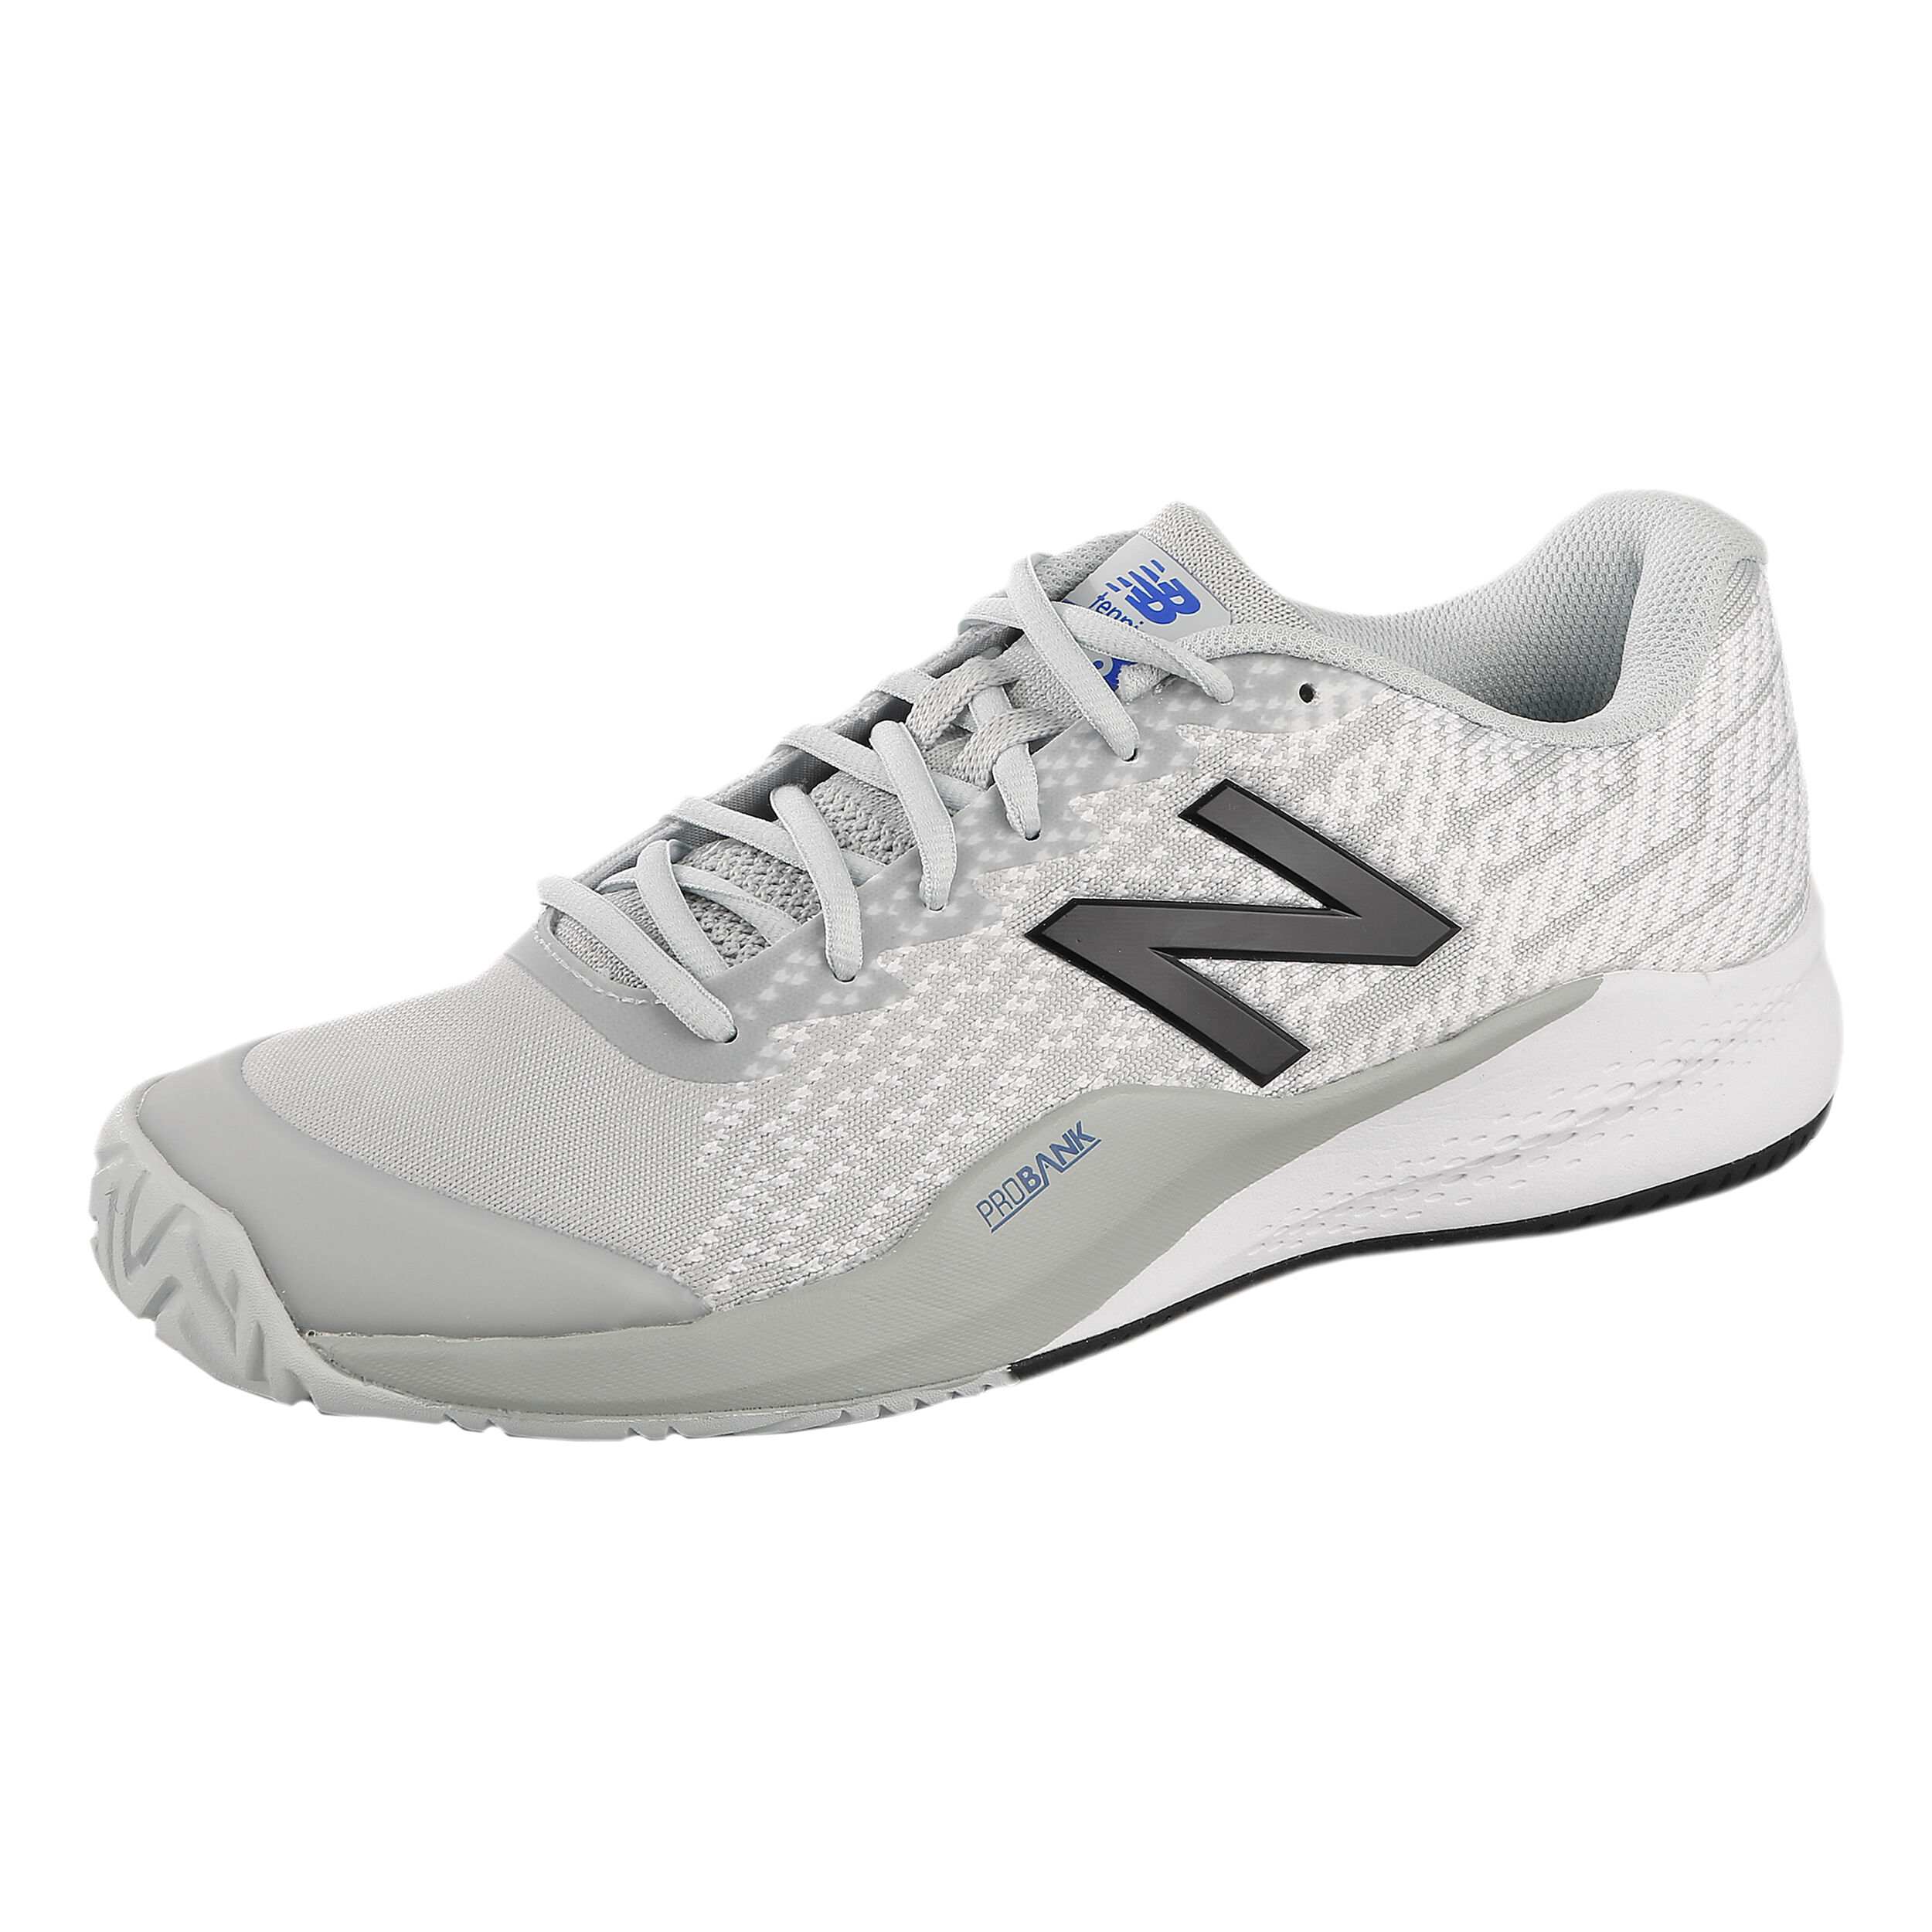 chaussures new balance 996 v3 toutes surfaces